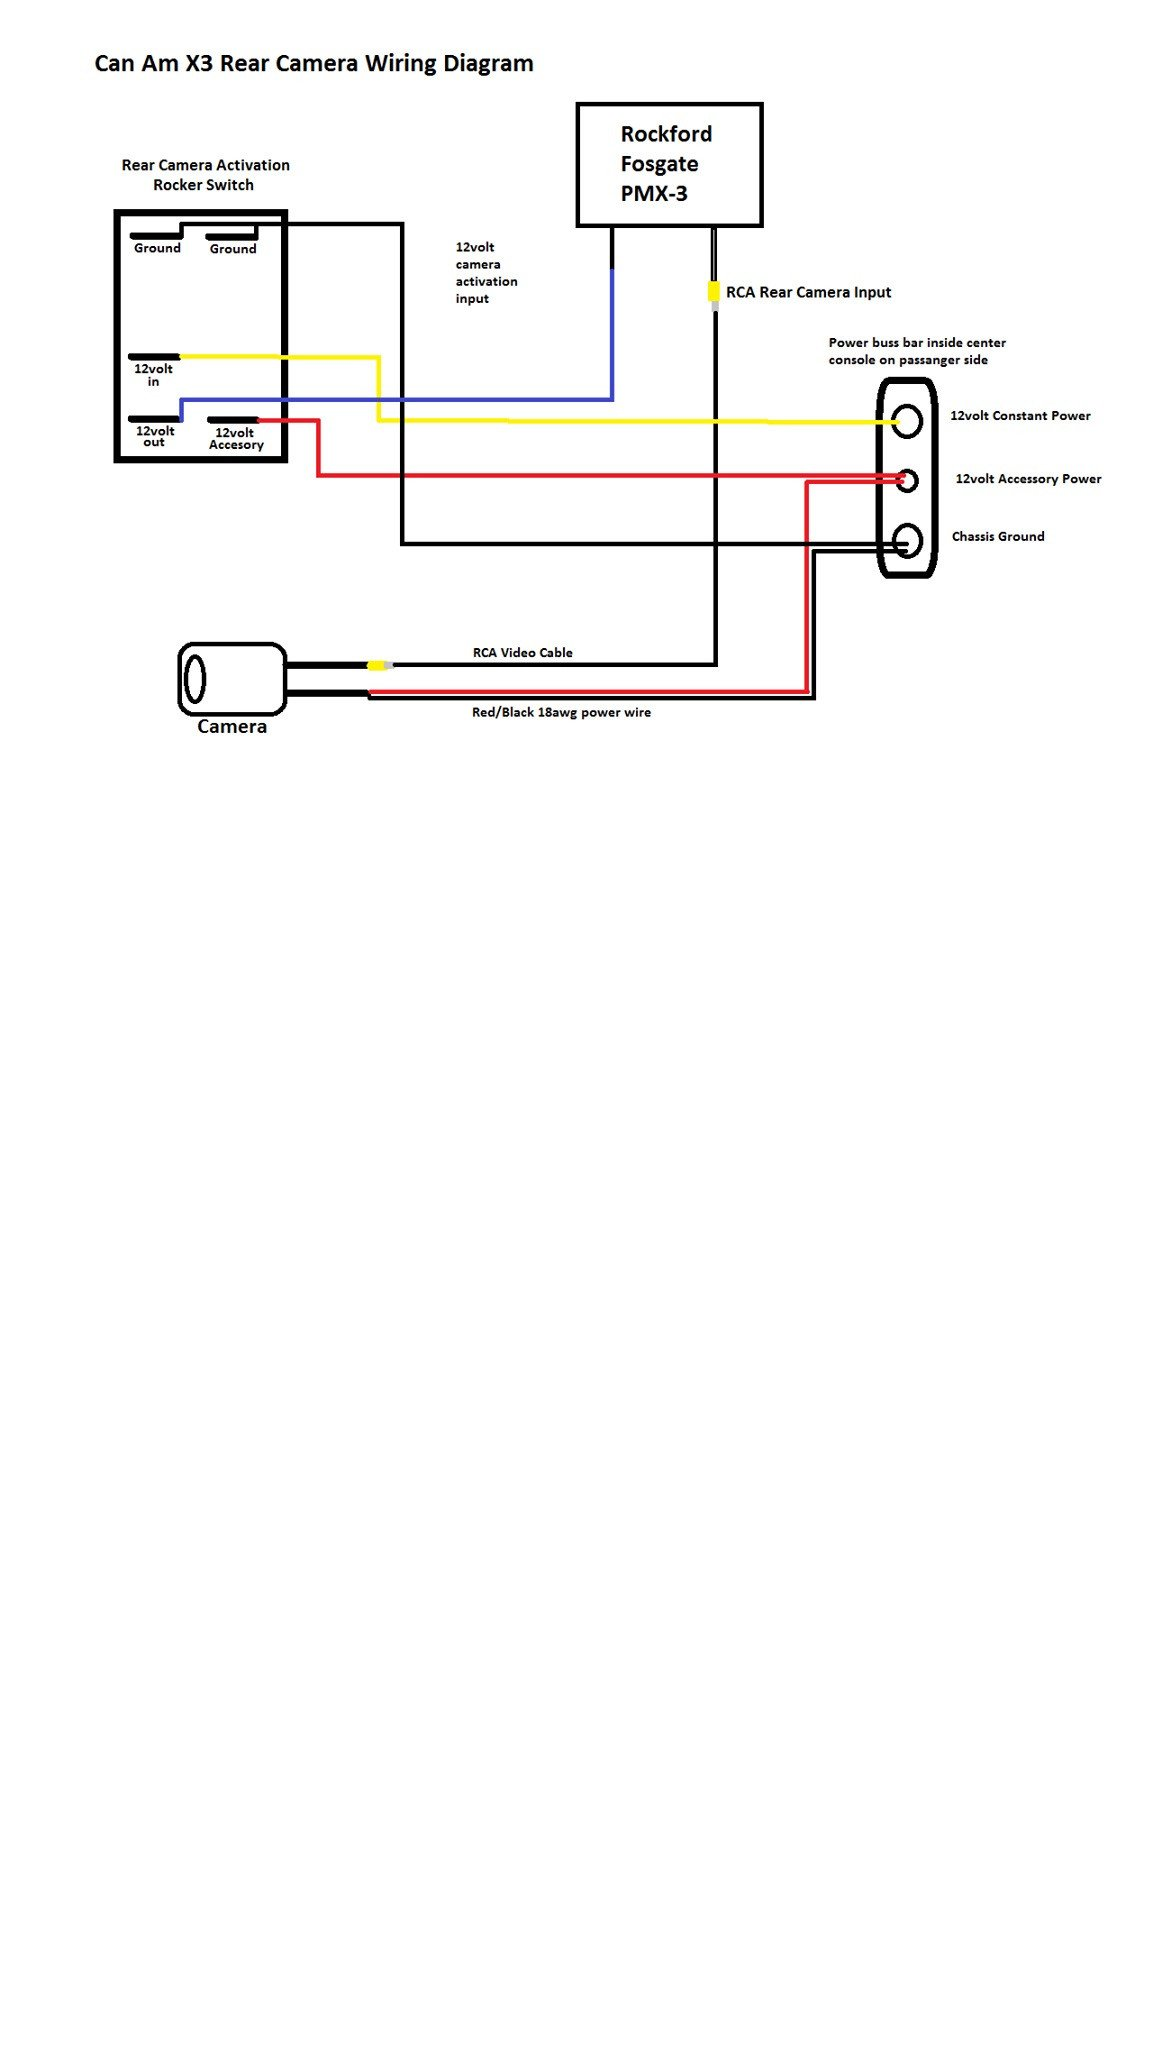 can light wiring diagram fender telecaster x3 rockford fosagate rear camera kit